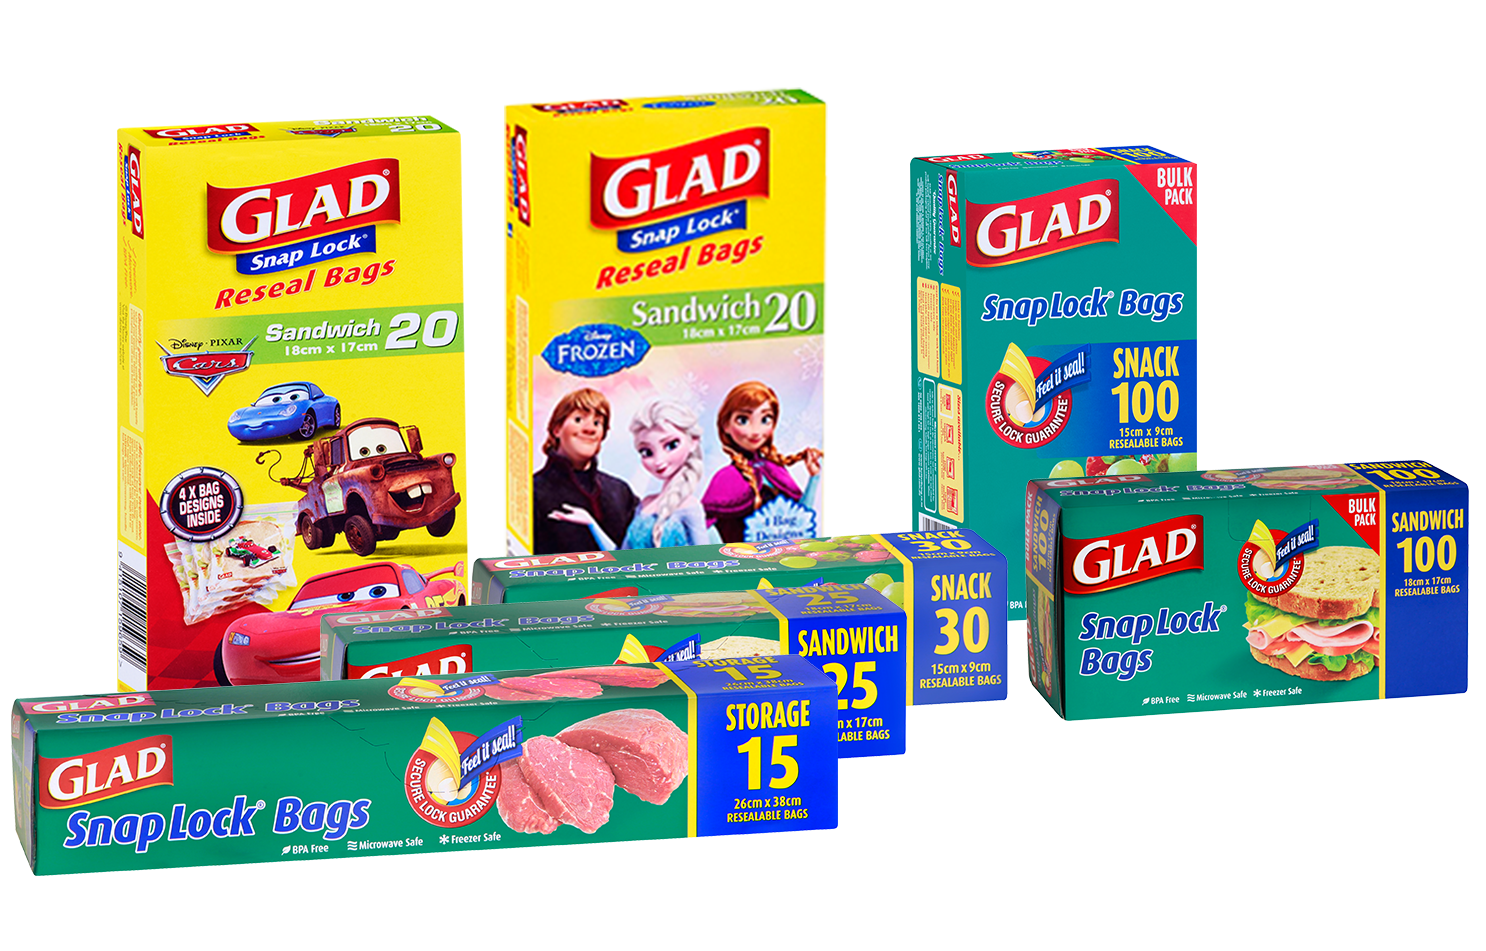 Glad 174 Snap Lock 174 Resealable Bags Better Living